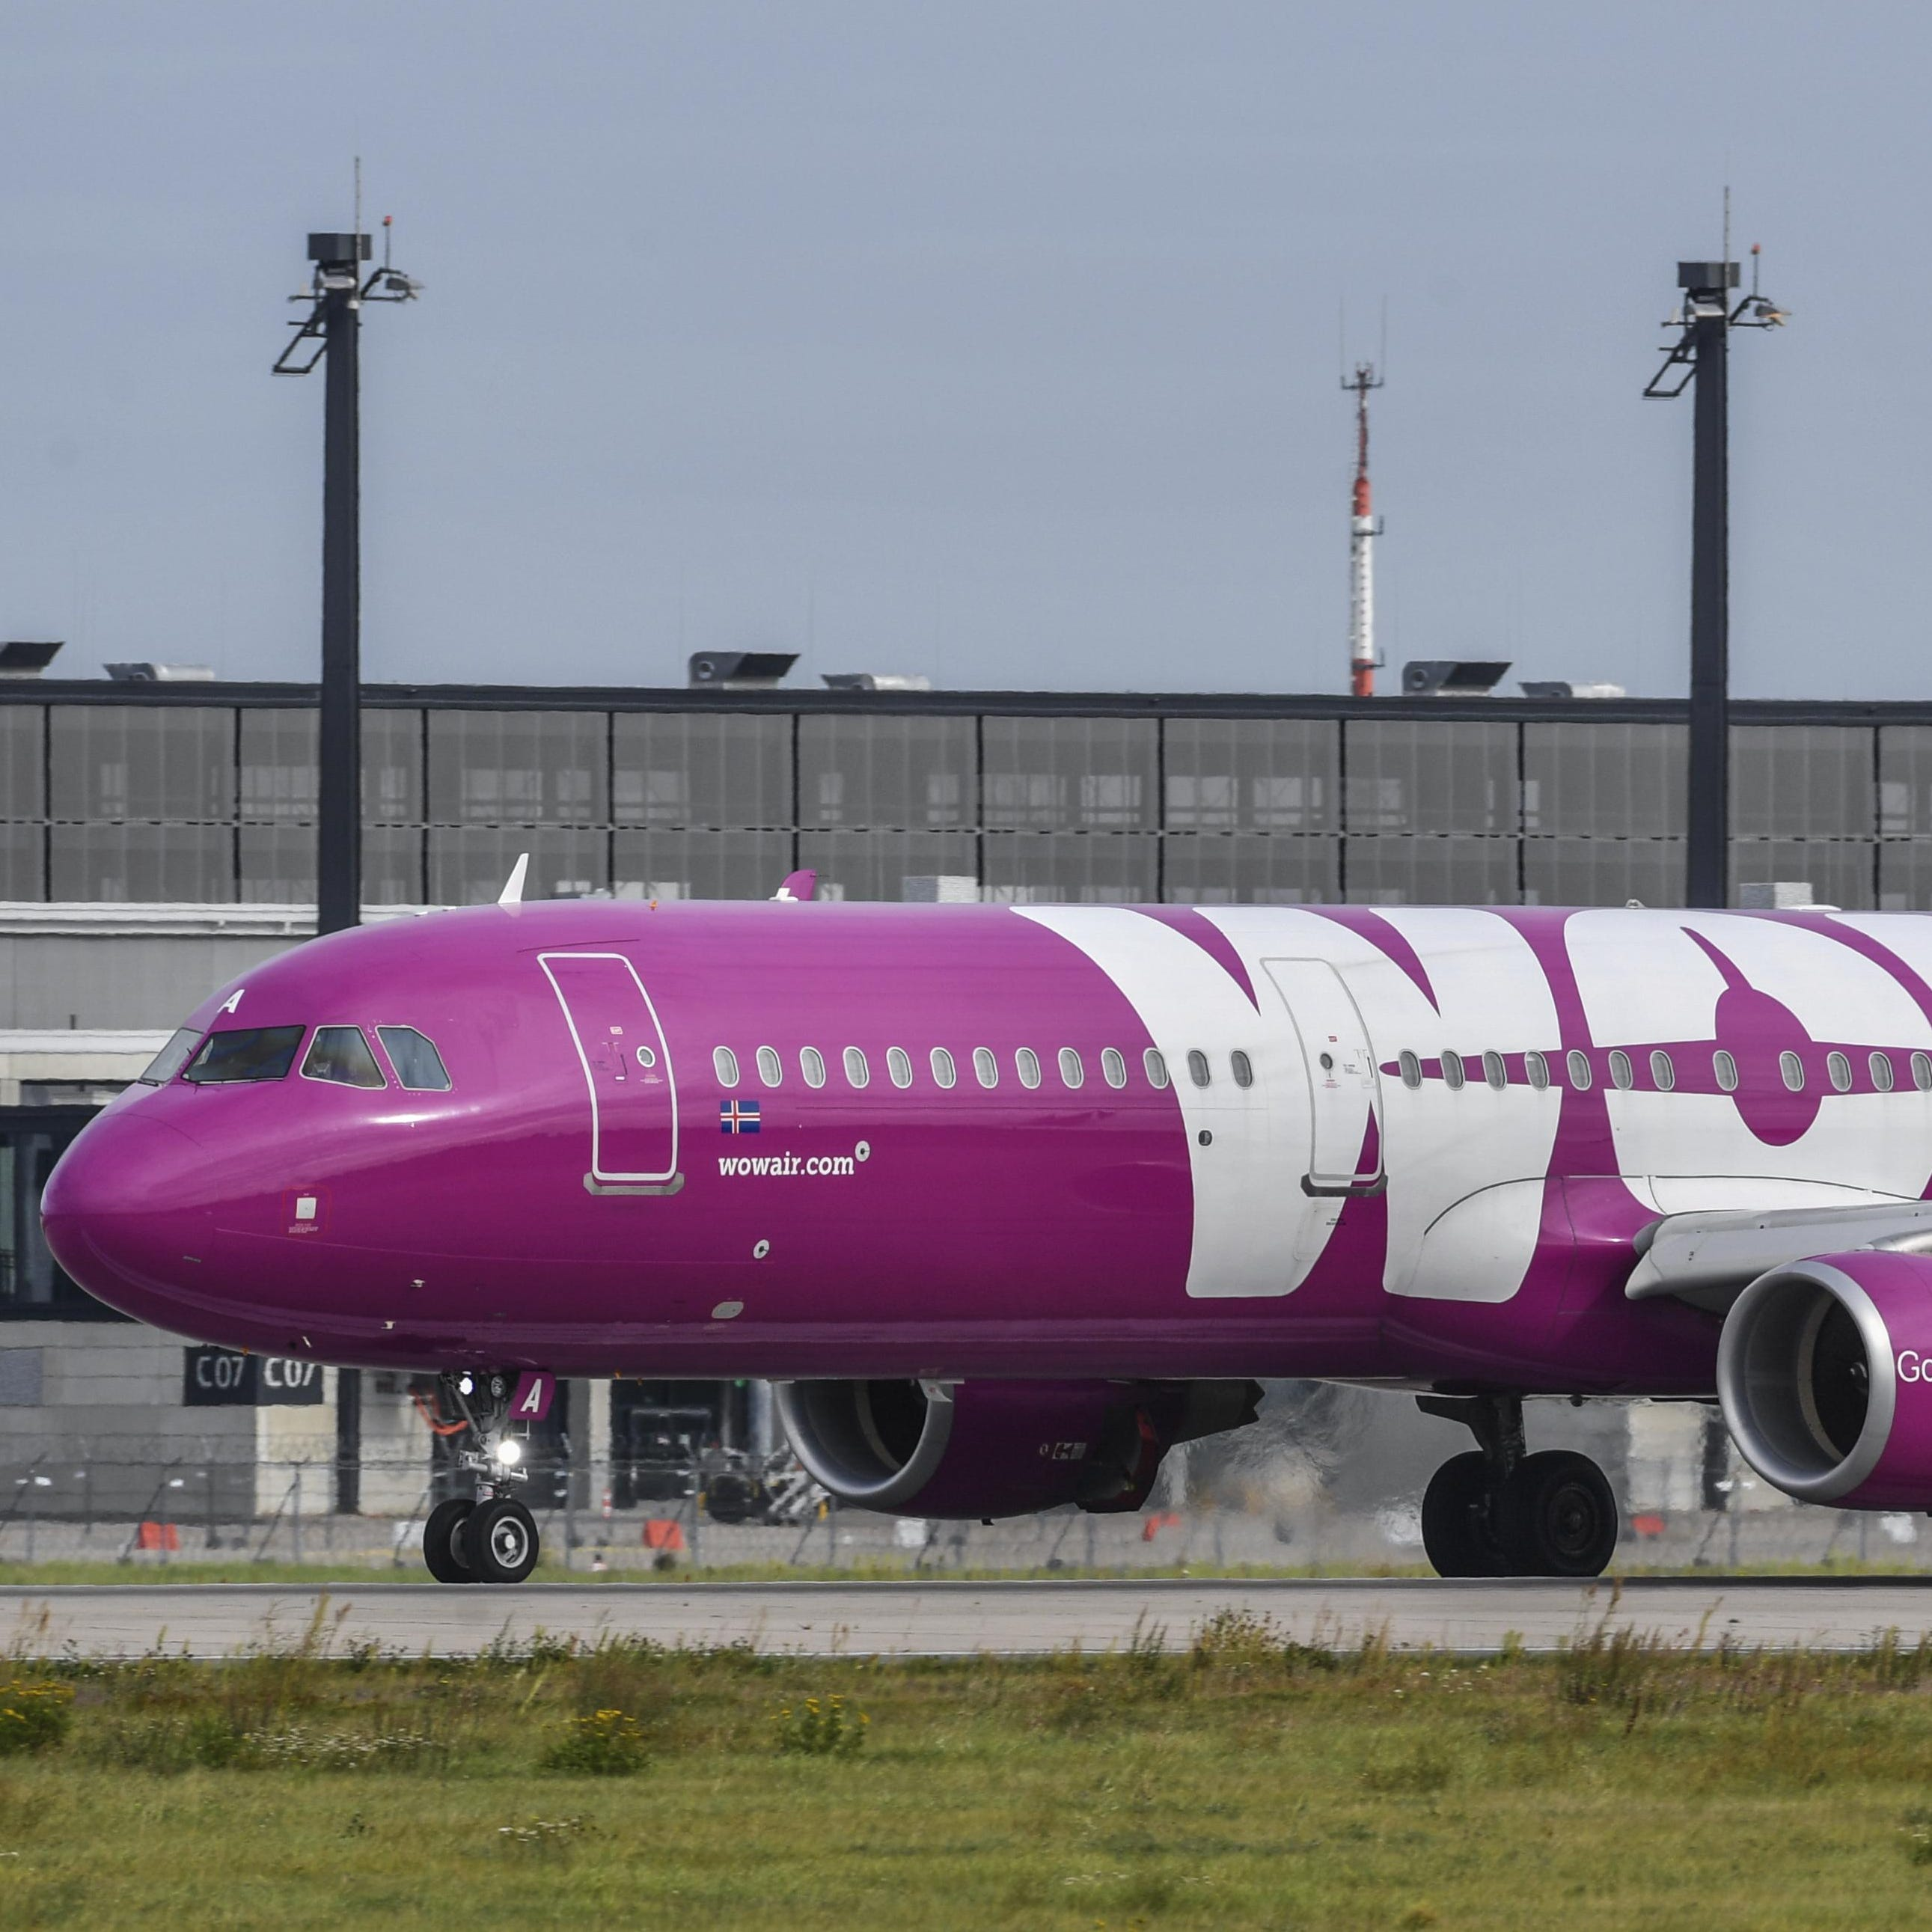 Icelandic airline WOW Air ceases operations; flights in Detroit grounded